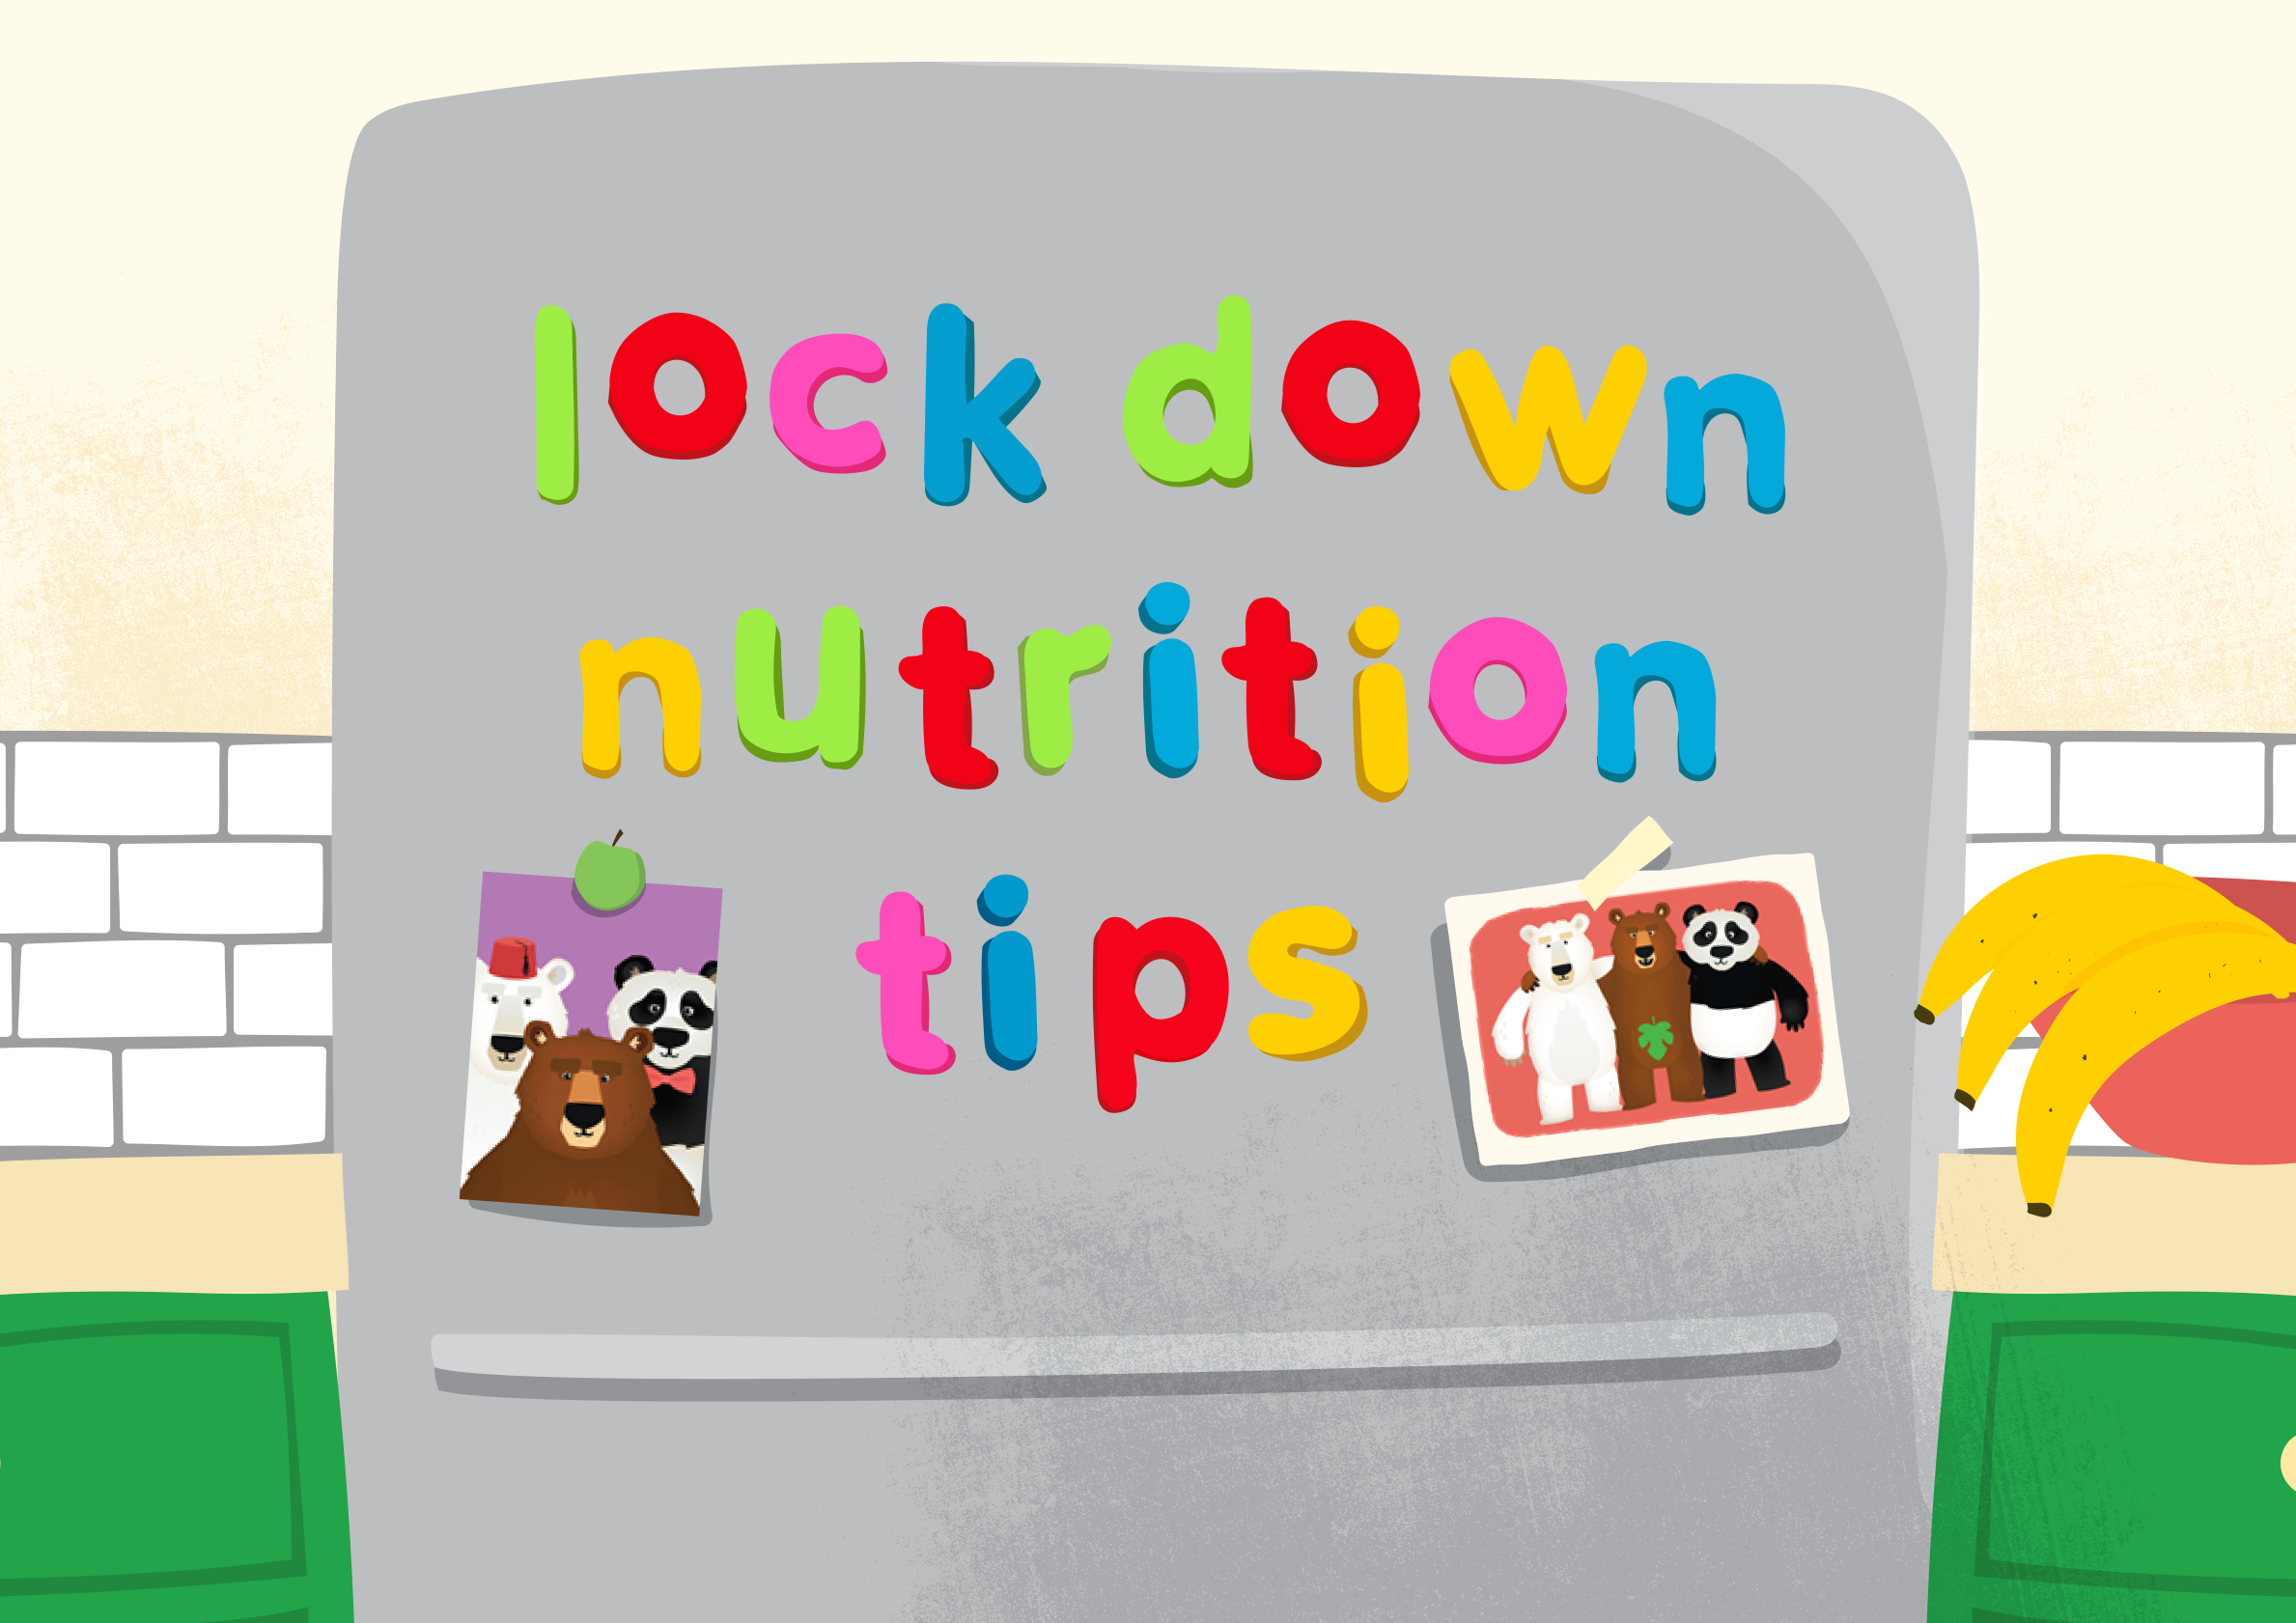 Lockdown nutrition tips